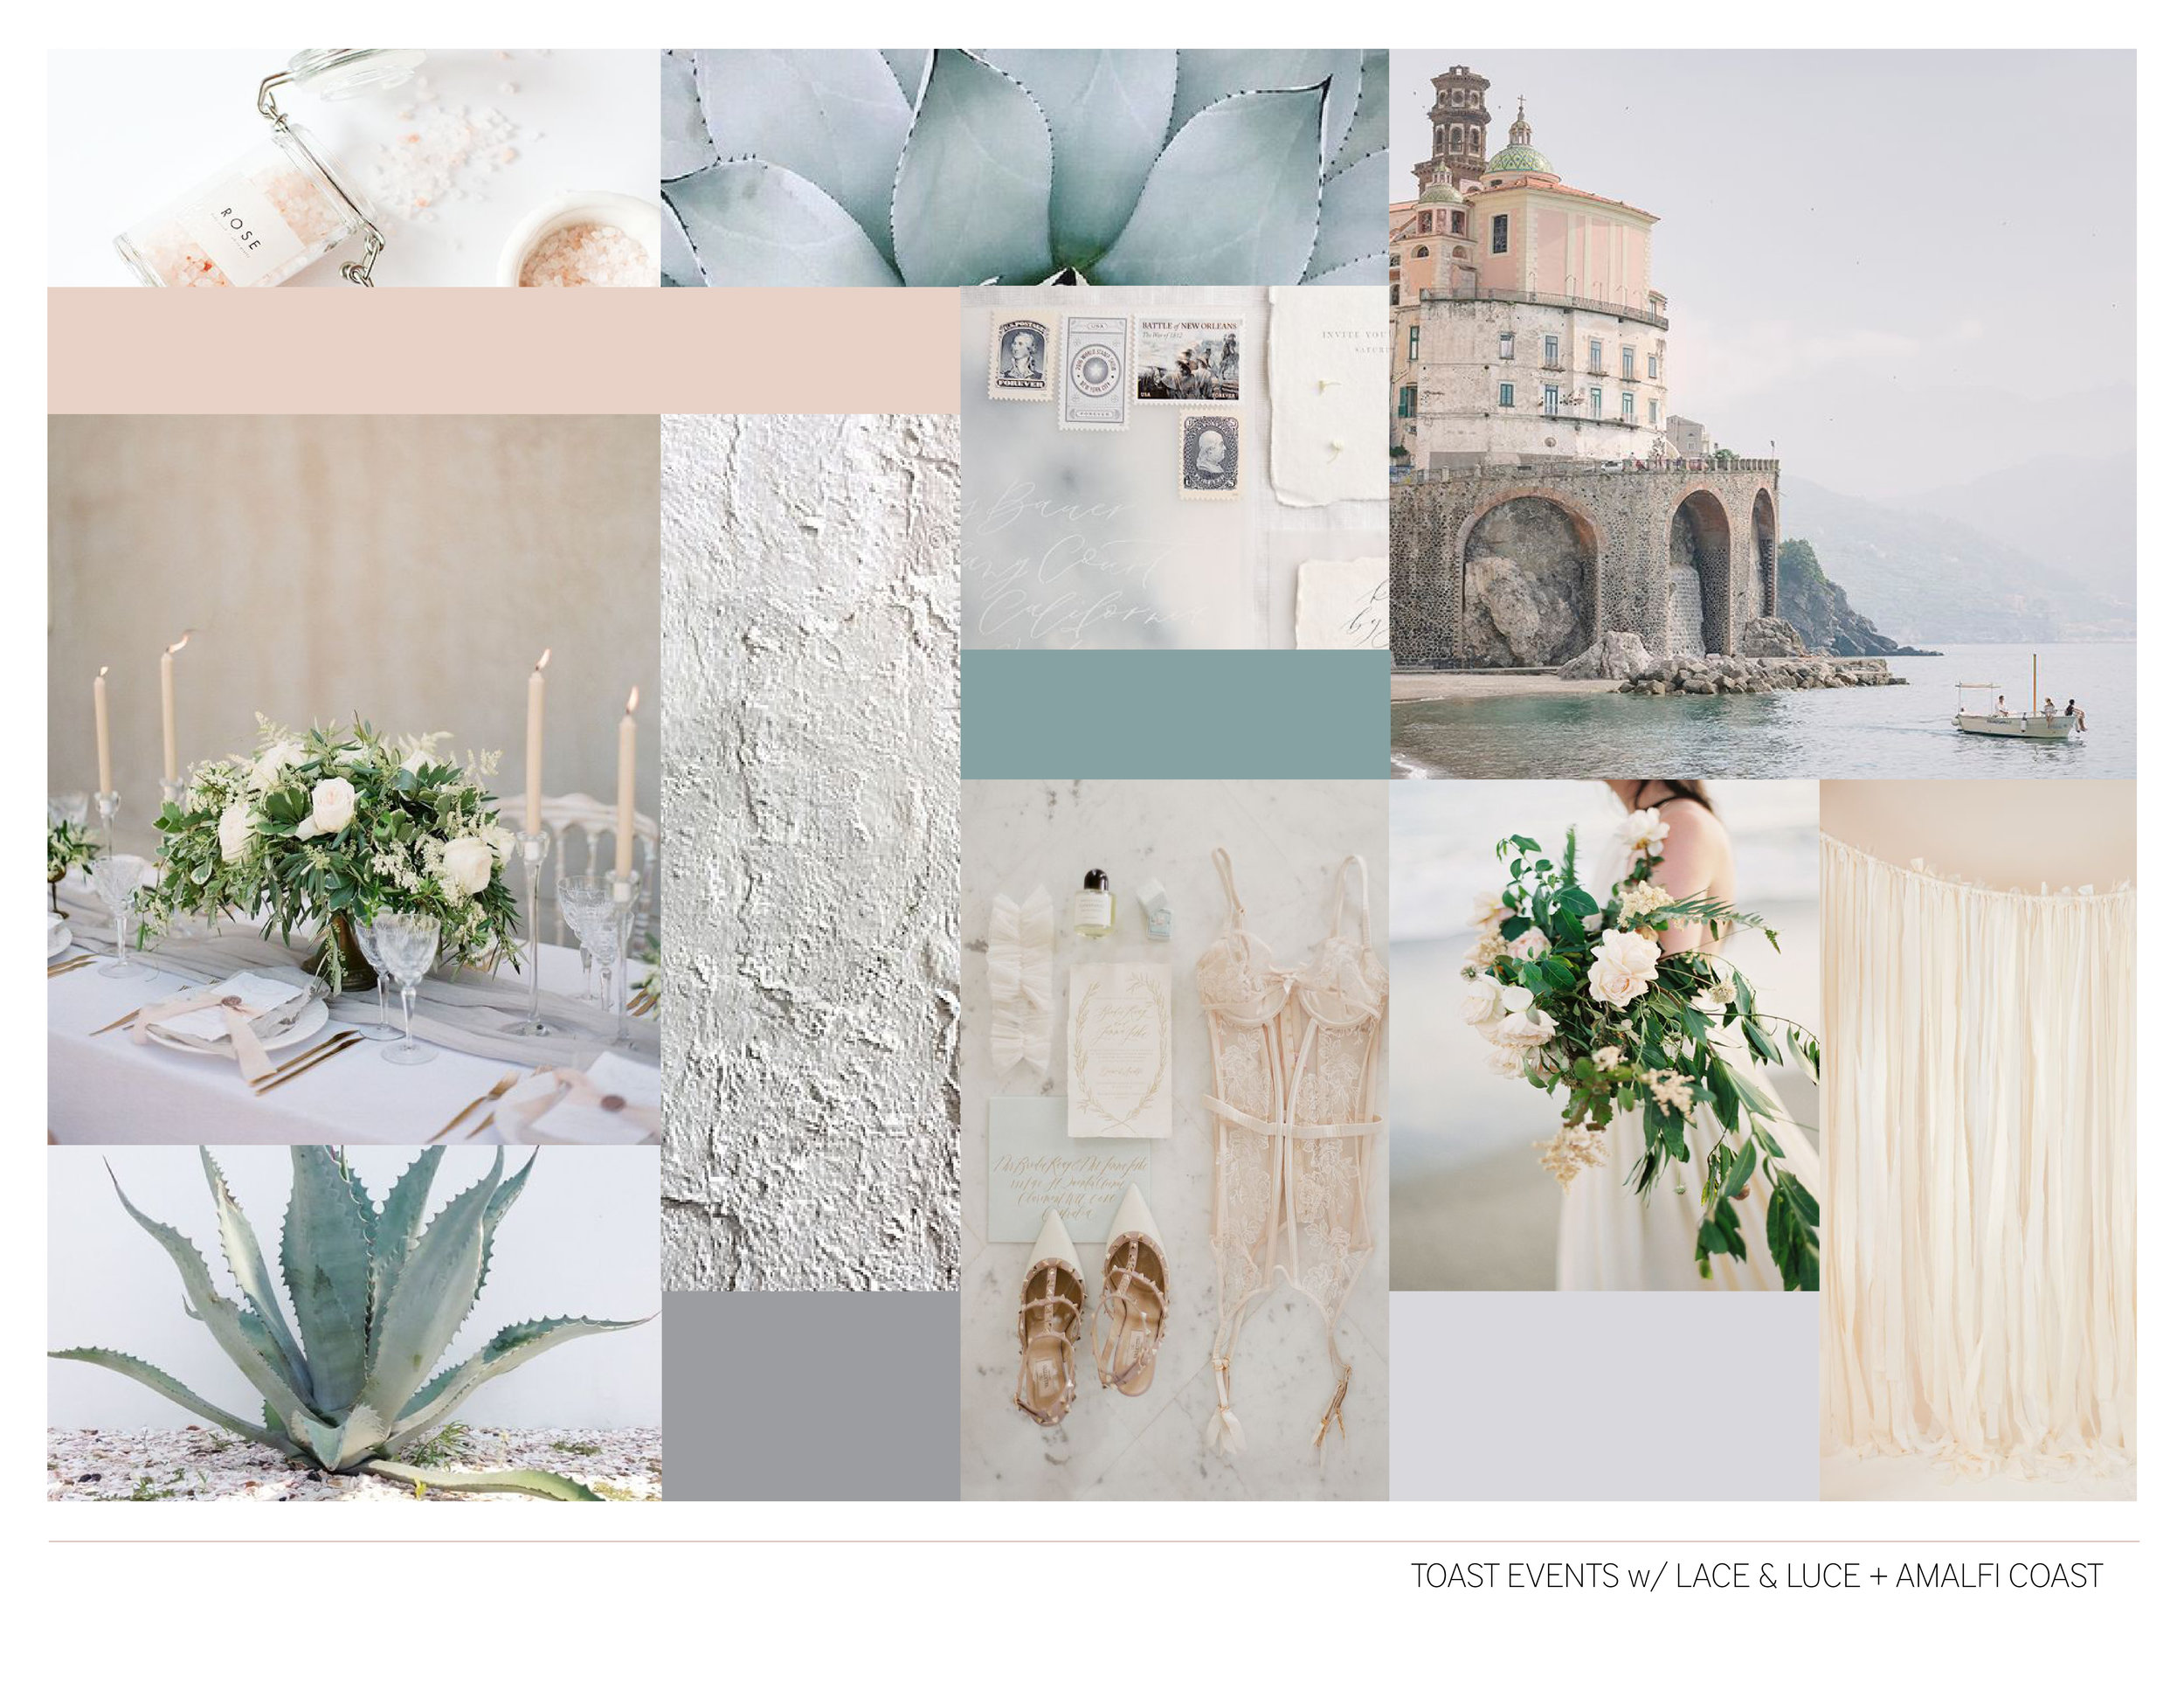 DESIGN PROFILE CREATED FOR 2017 EDITORIAL SHOOT IN ITALY, ALMAFI COAST